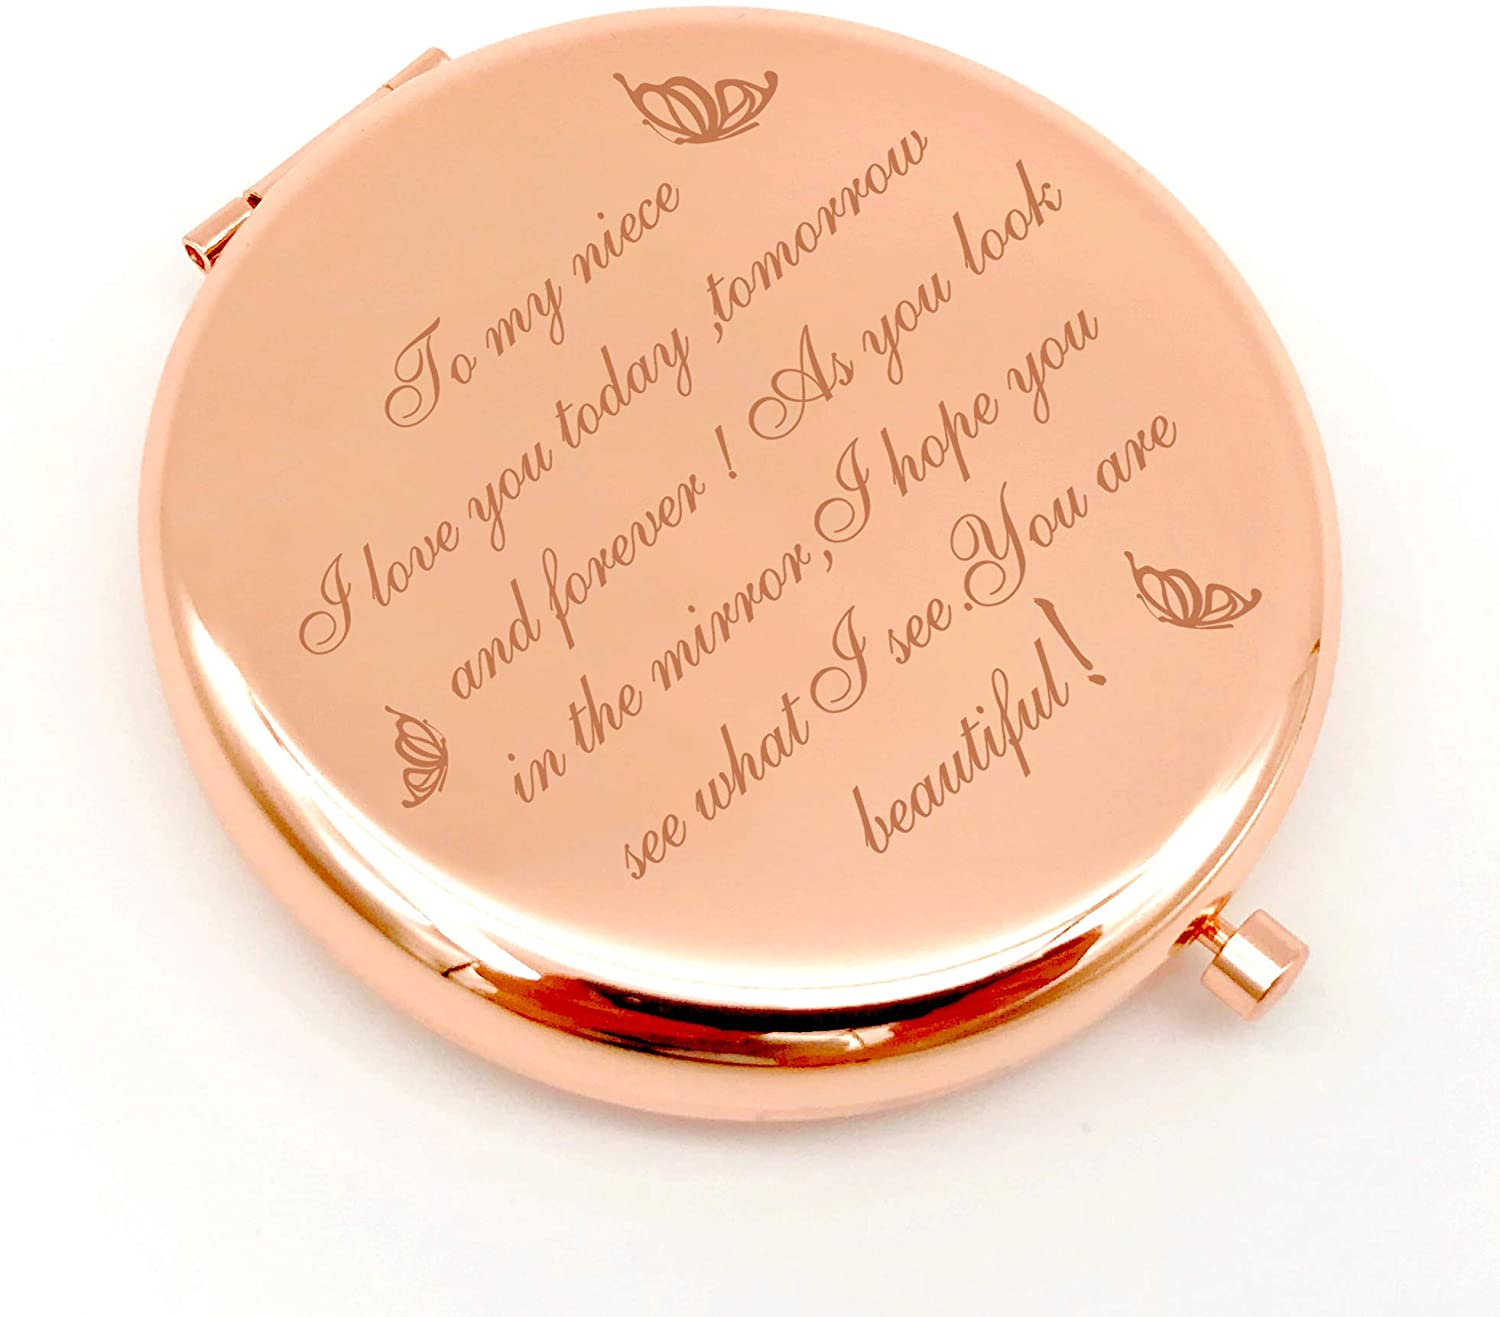 Warehouse No.9 Niece Gifts from Aunt Uncle, Travel Pocket Cosmetic Engraved Compact Makeup Mirror for Niece Birthday Christmas Graduation Cosmetic Mirror Gifts